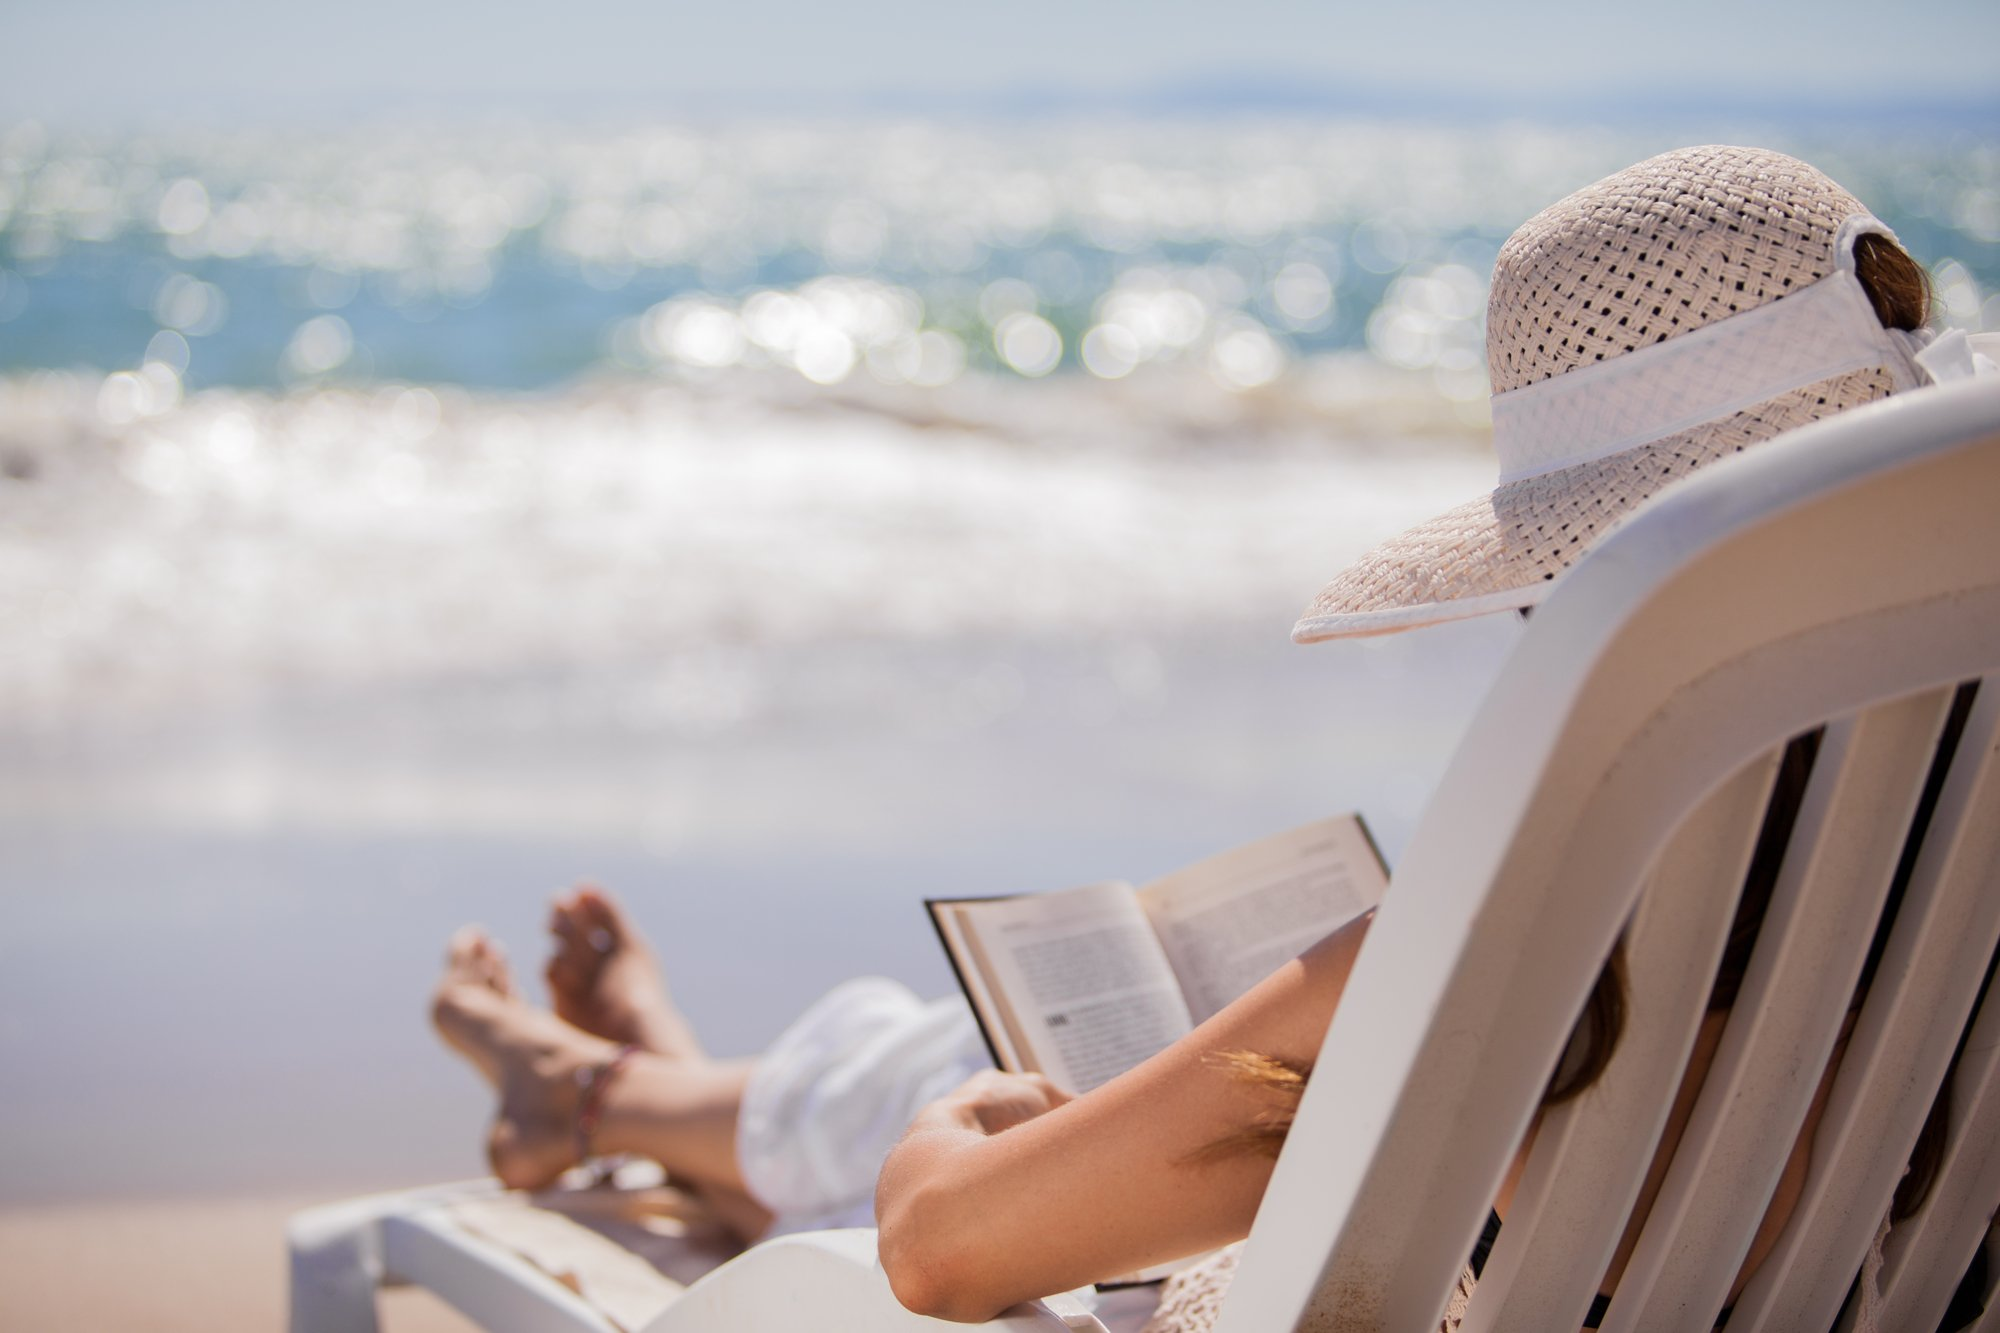 Looking for something to read this summer while on vacation? Have I got the list for you! Packed with inspirational stories, this list of books especially curated for midlife women is sure to delight.Enjoy! #recommendedbooks #summerreading